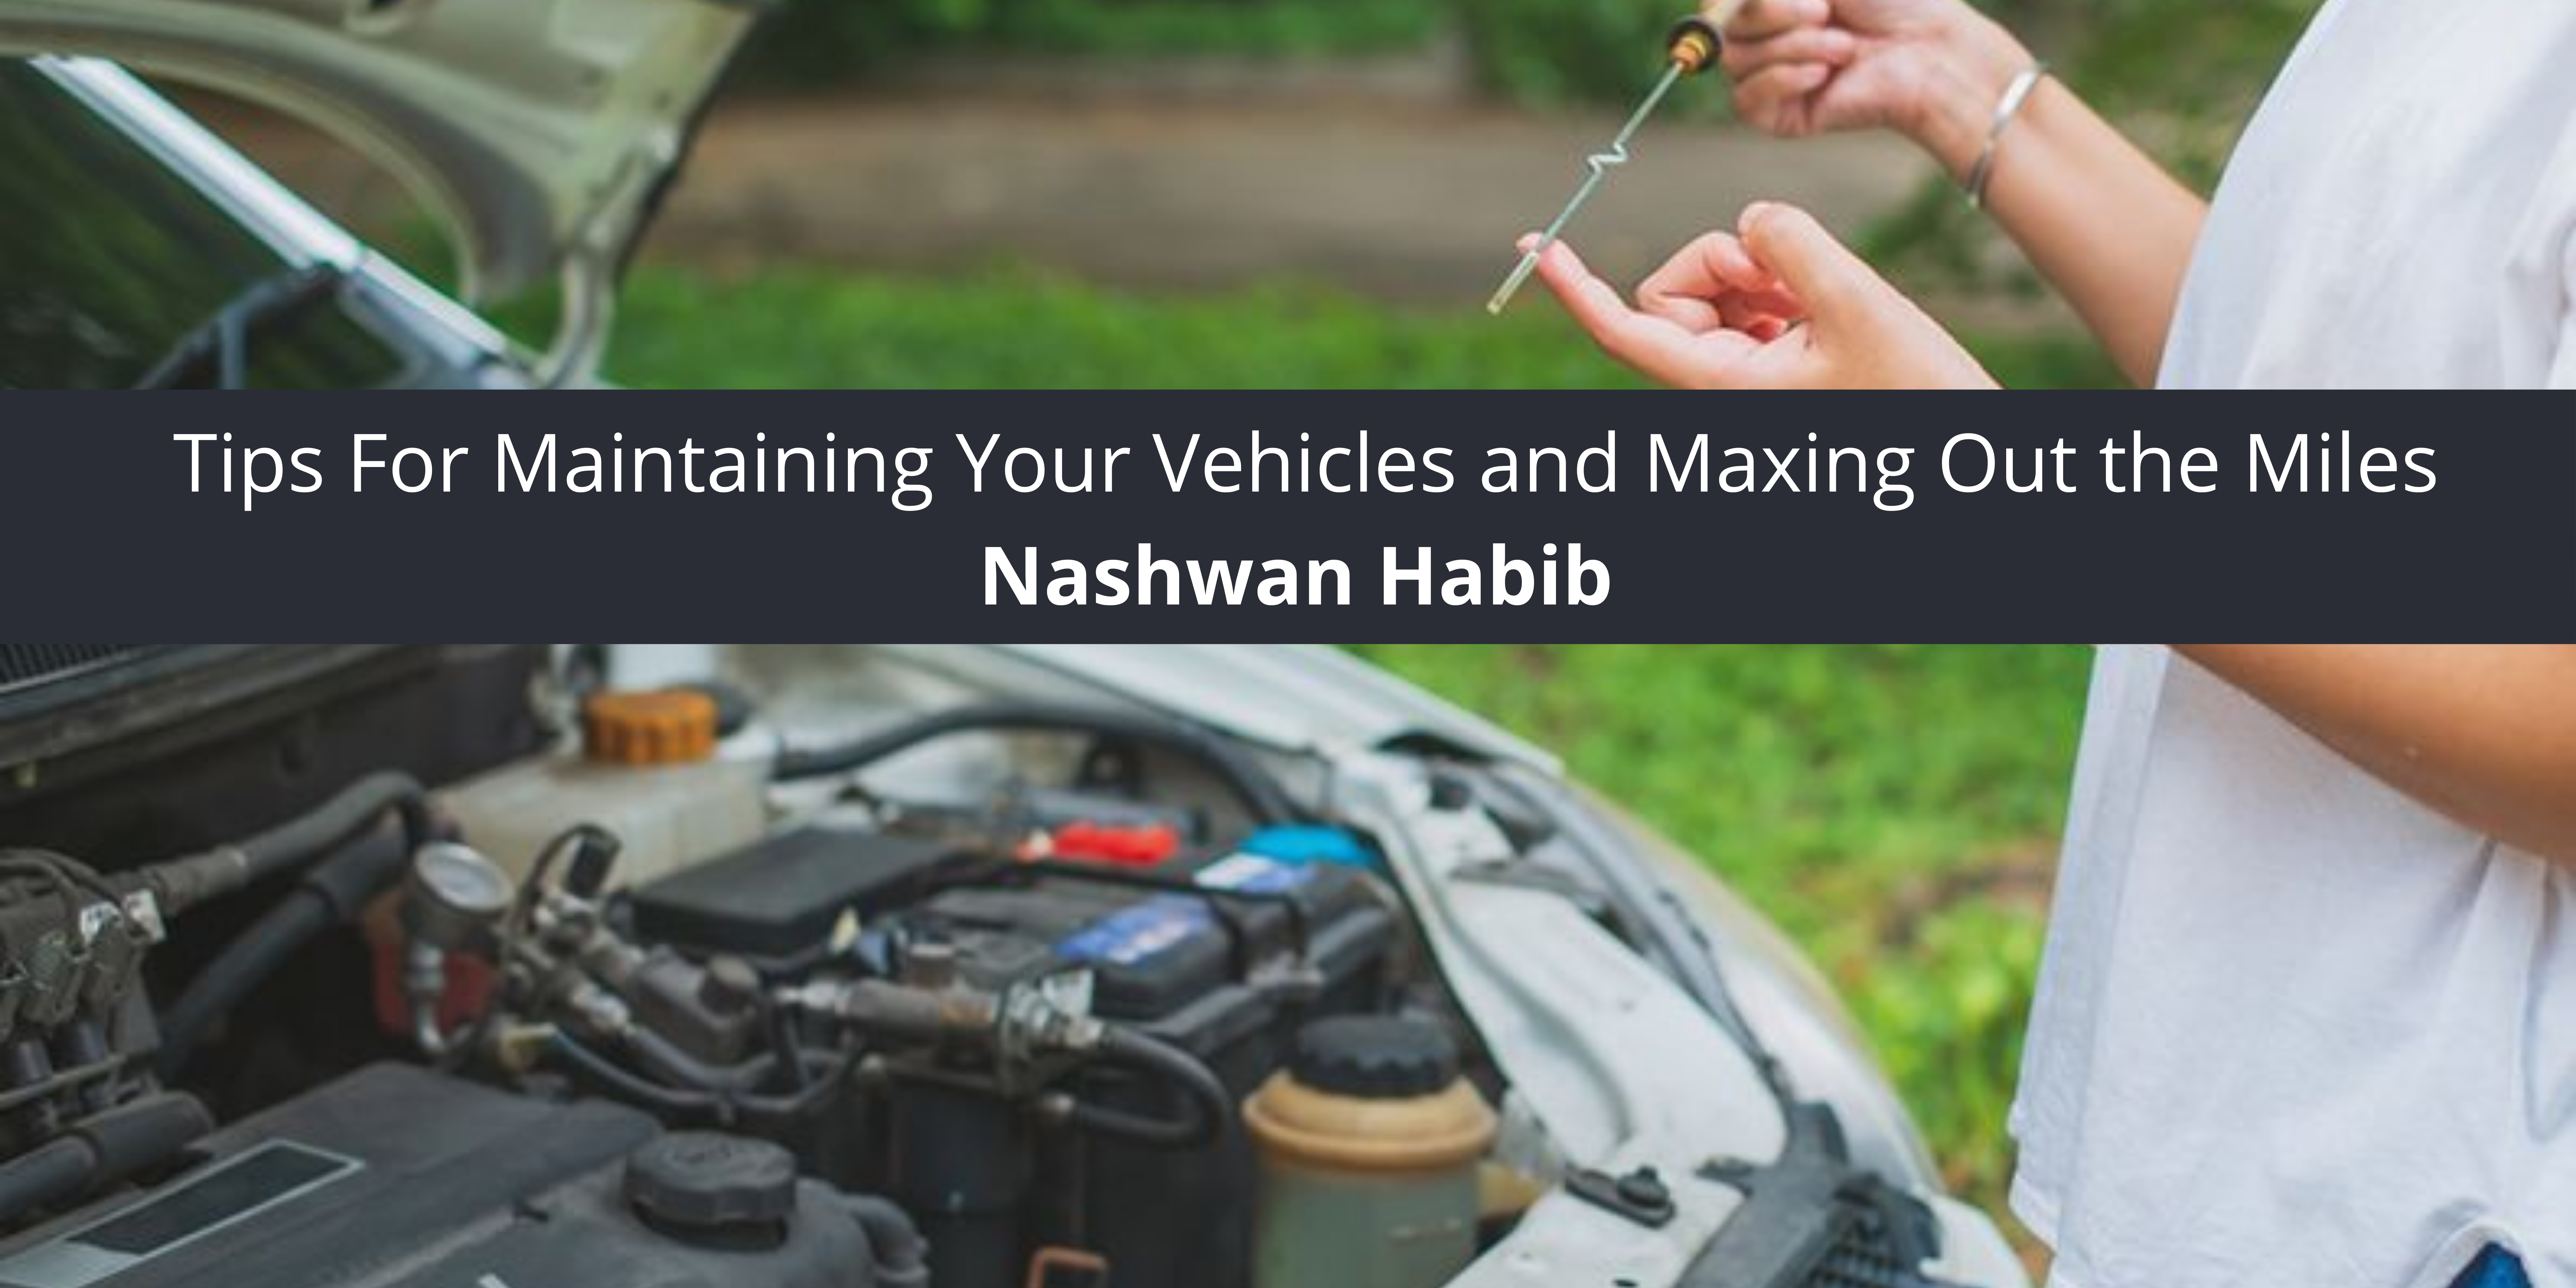 Nashwan Habib Offers Tips For Maintaining Your Vehicles Maxing Miles